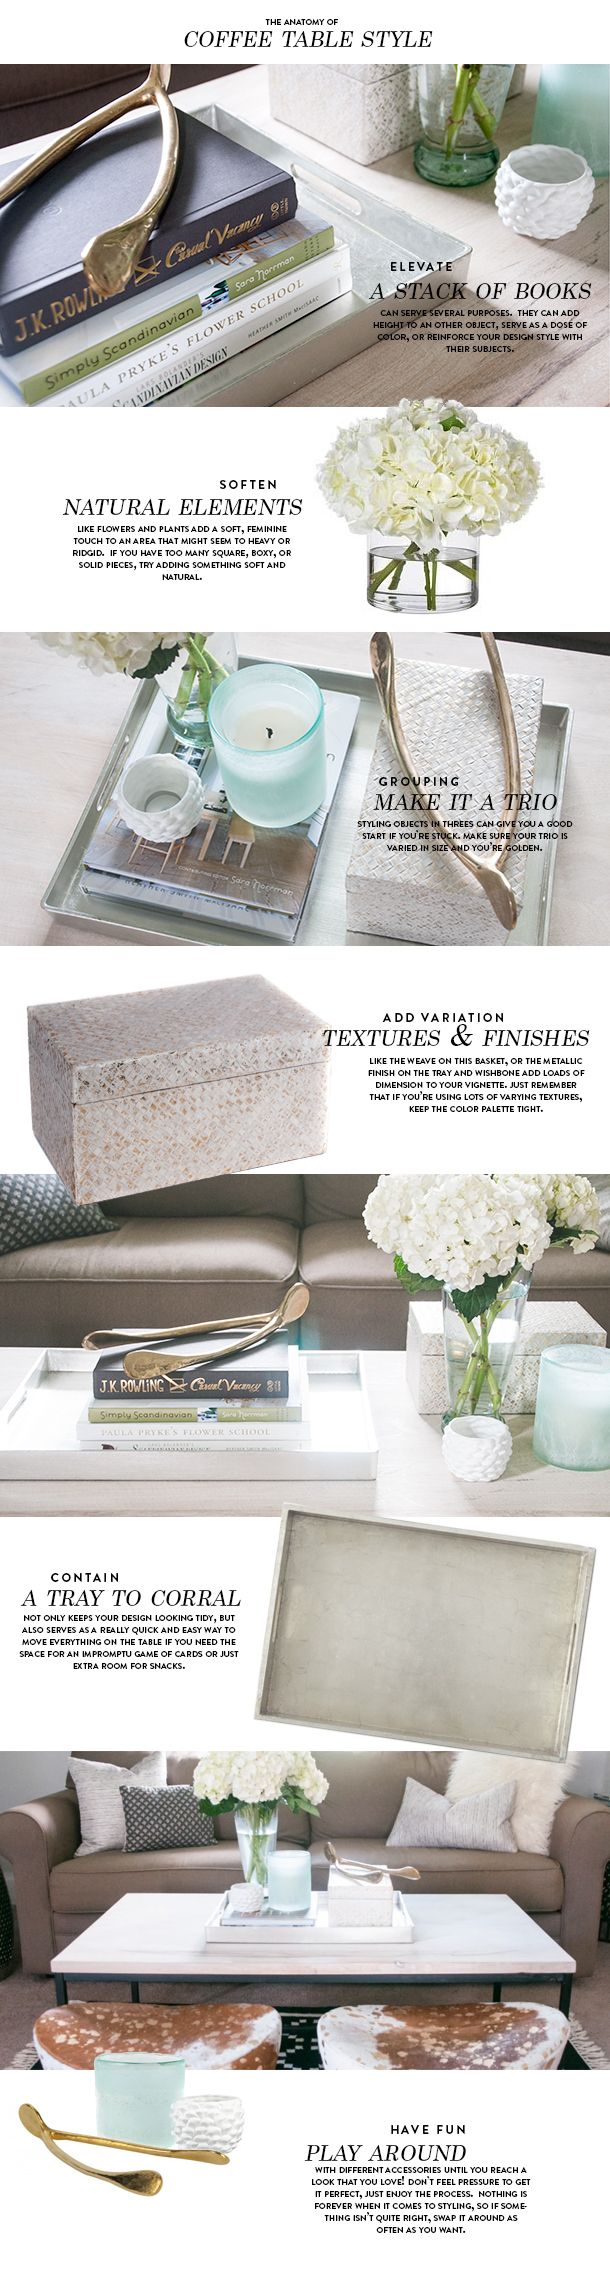 Summer Styling Series: Coffee Table Styling